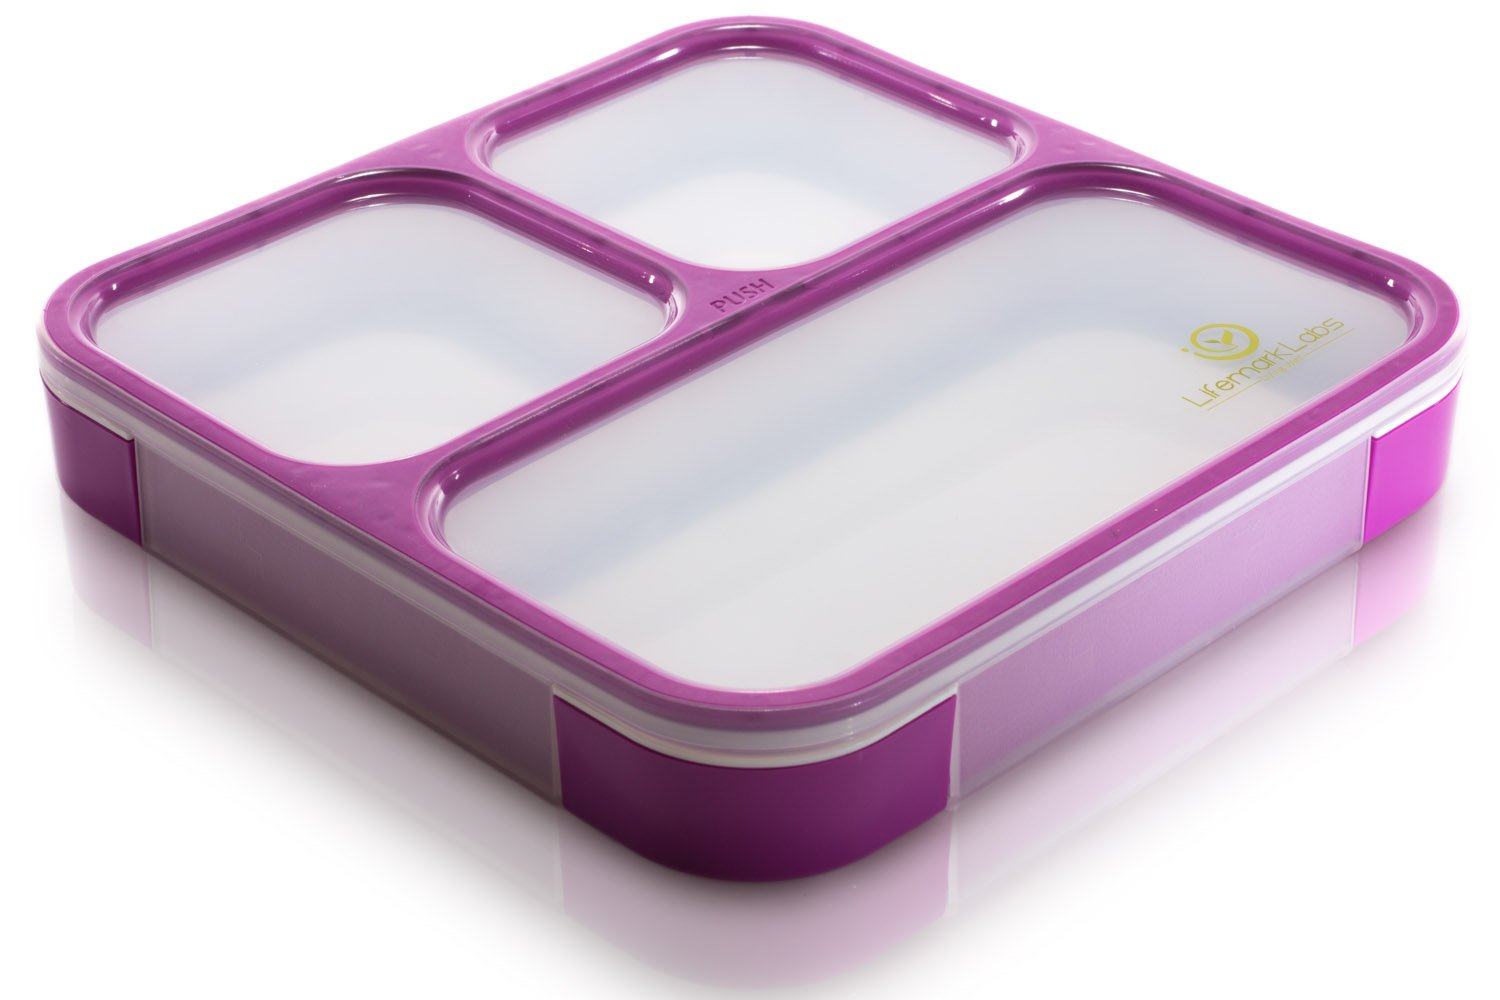 Bento Lunch Box by Lifemark Labs - Stylish Leakproof Microwavable Lunch Kit with 3 Compartments - For Kids & Adults - 100% Food Safe Design - Easy Portion Control - This Clever Container is Dishwasher Friendly - Healthy Eating Starts Now! LL-BentoBox